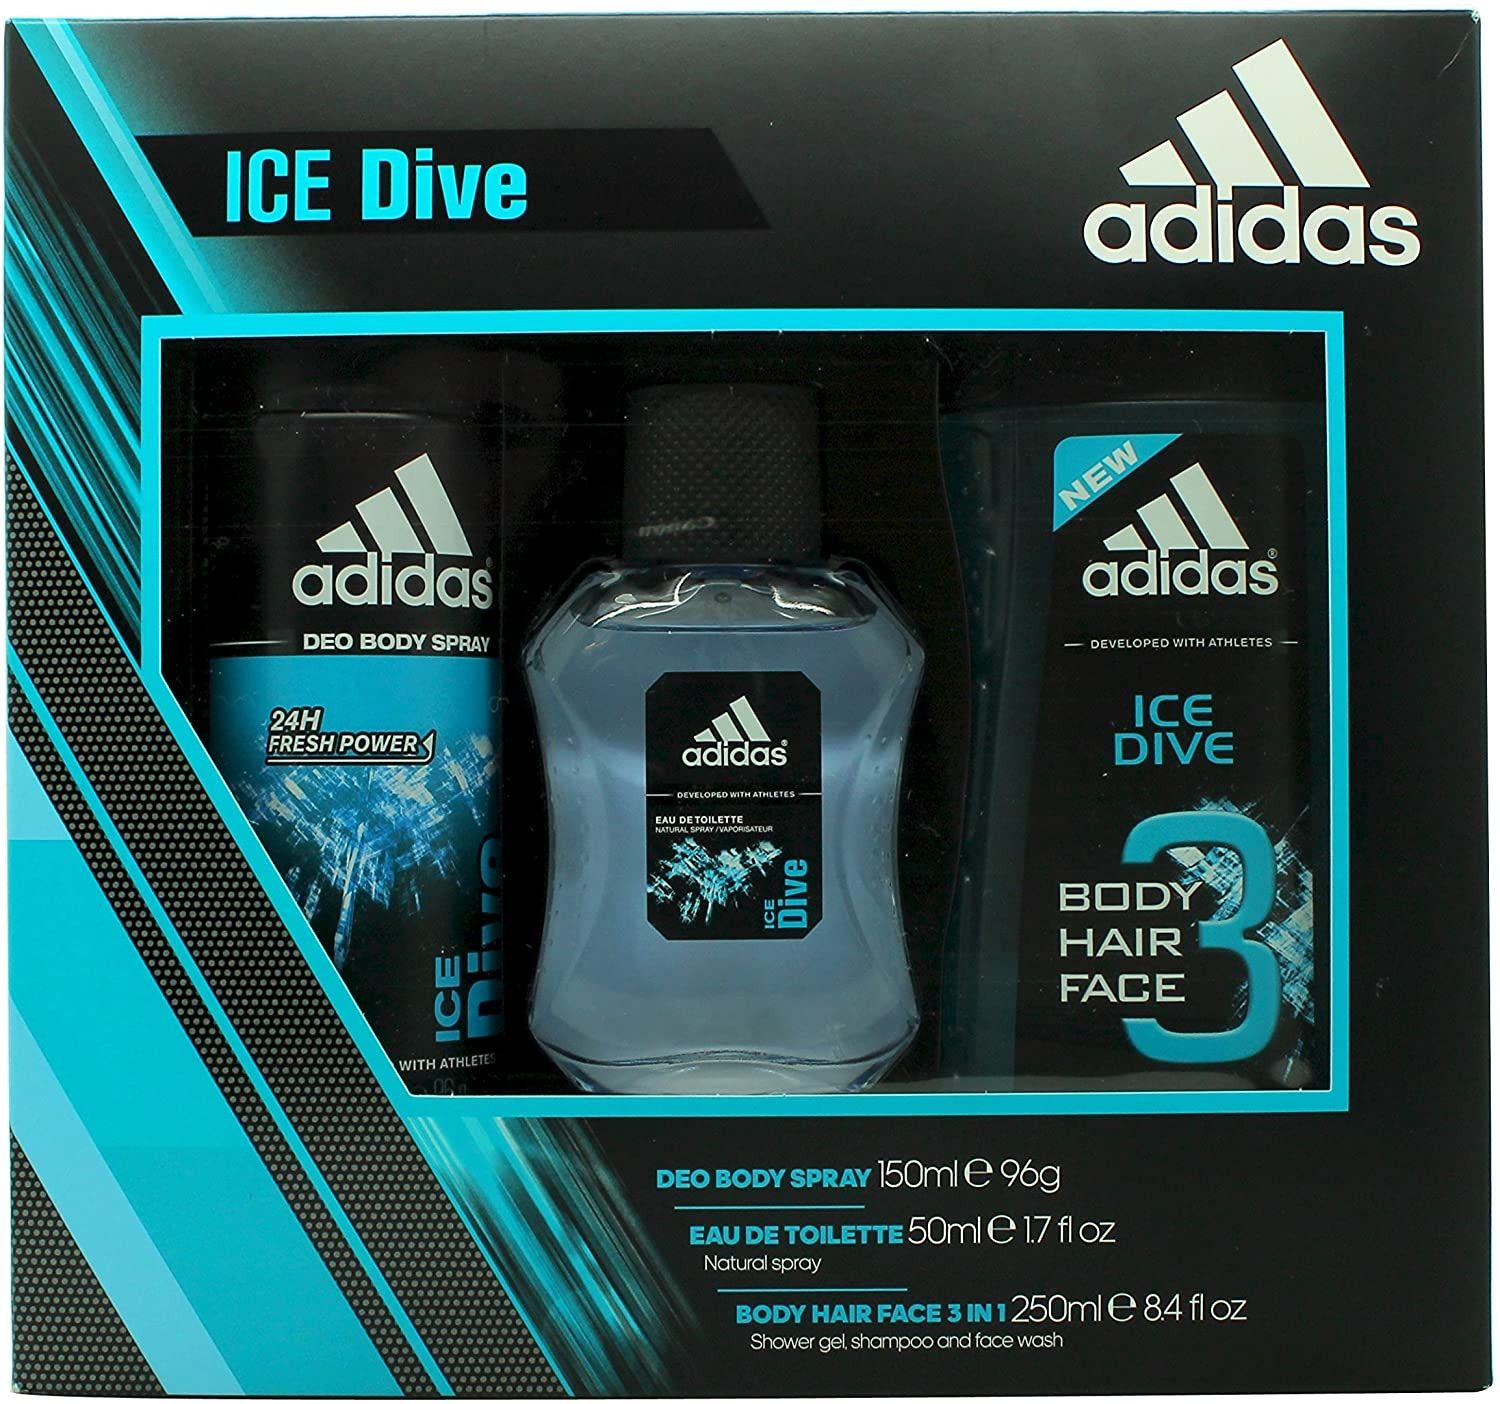 Adidas Ice Dive Gift Set 50Ml Eau De Toilette And Body Spray 150Ml And Shower Gel 250Ml